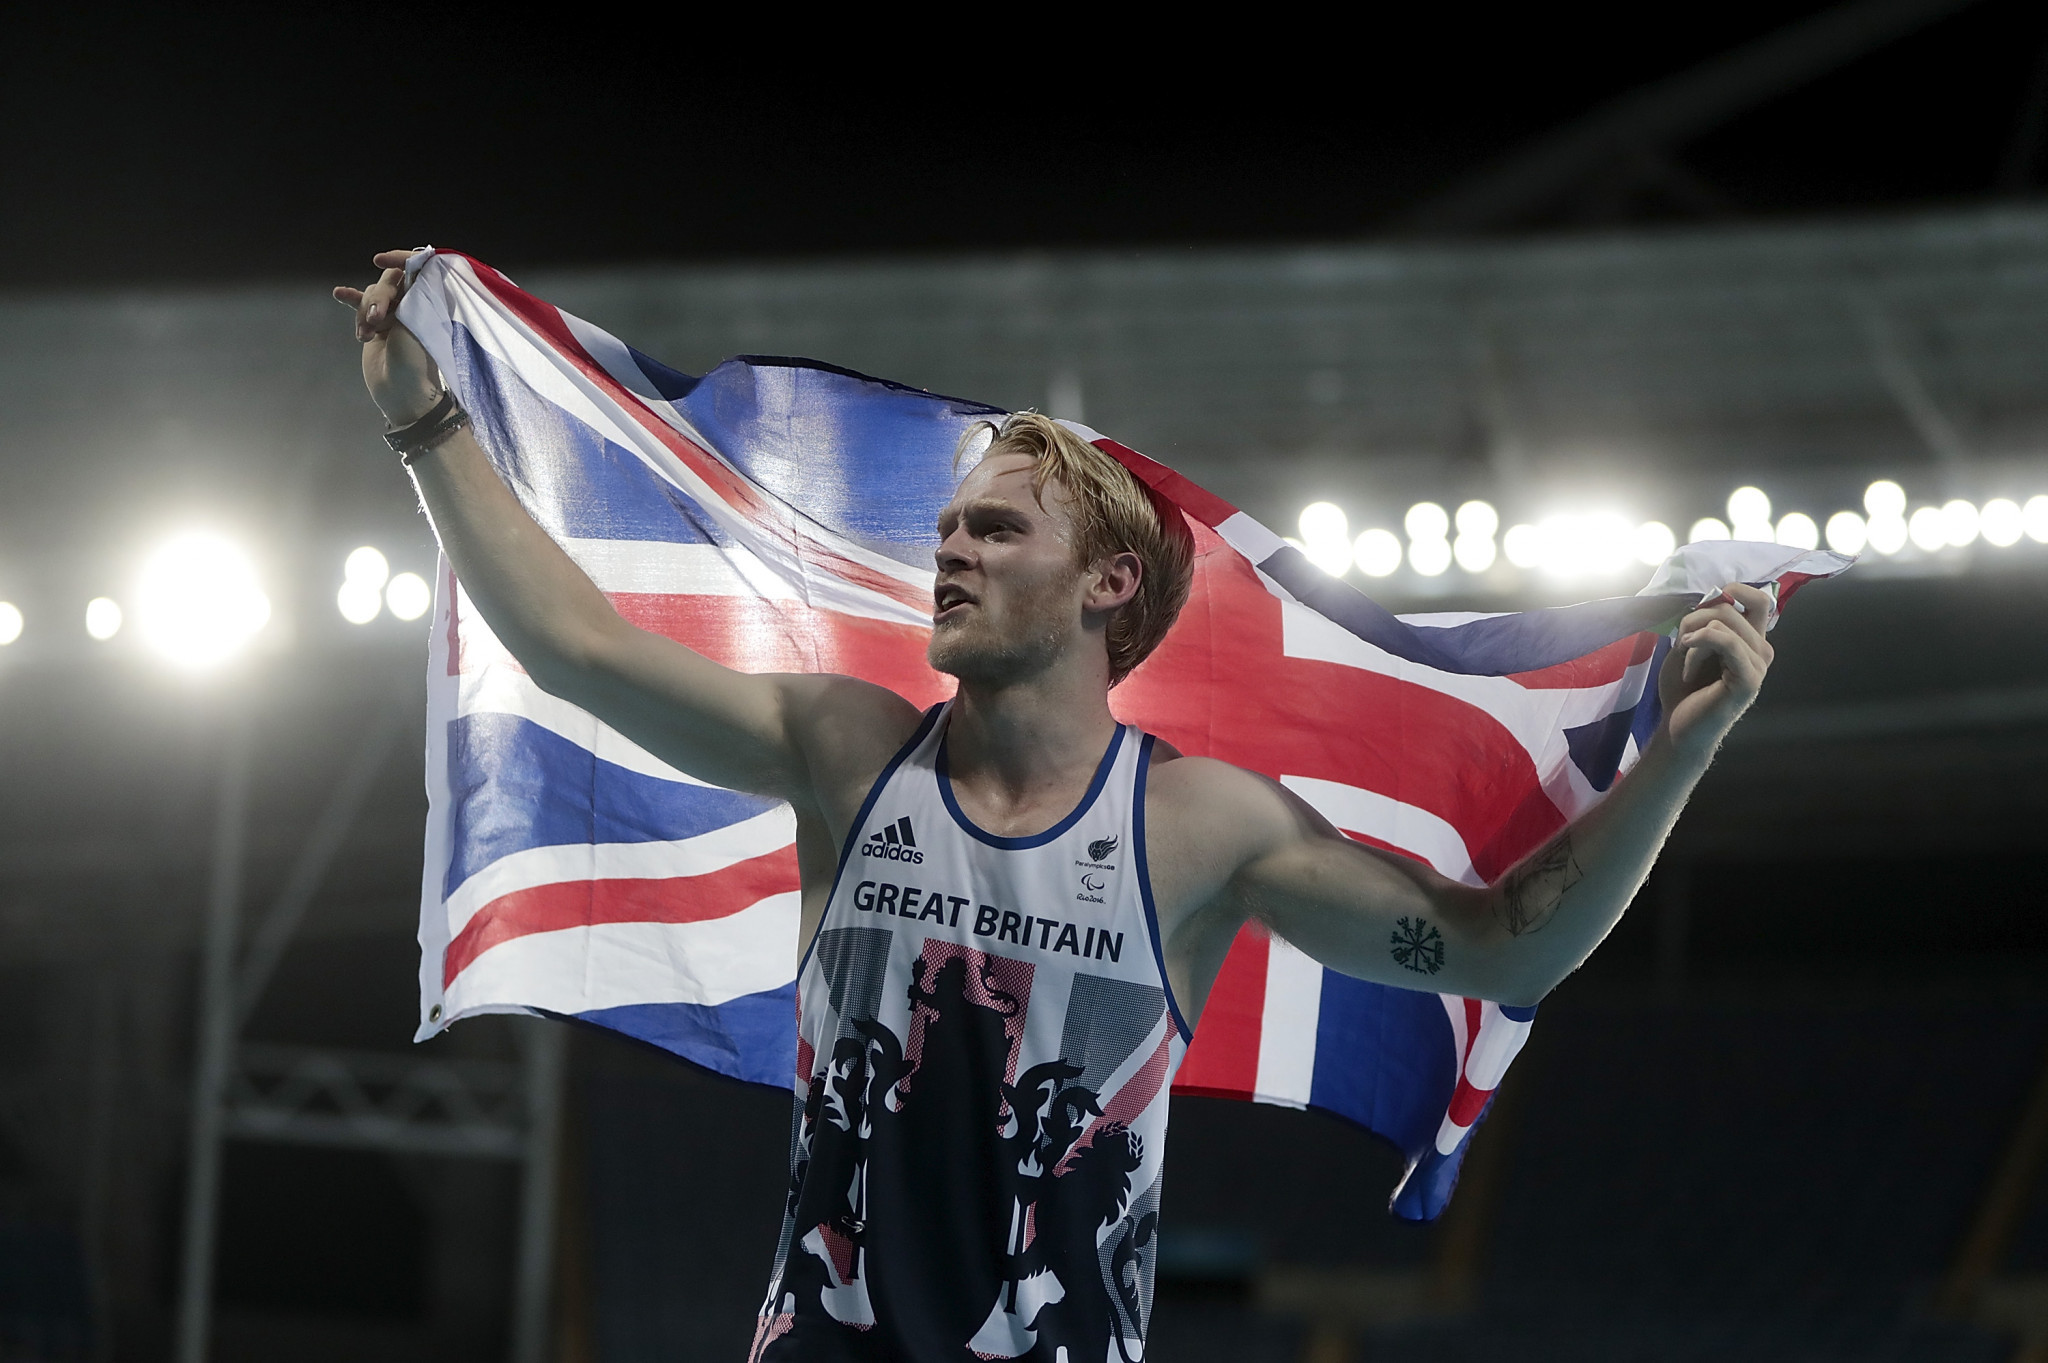 Jonnie Peacock of Great Britain celebrates after winning the Men's 100m F44 Final during day 2 of the Rio 2016 Paralympic Games at the Olympic Stadium ©Getty Images